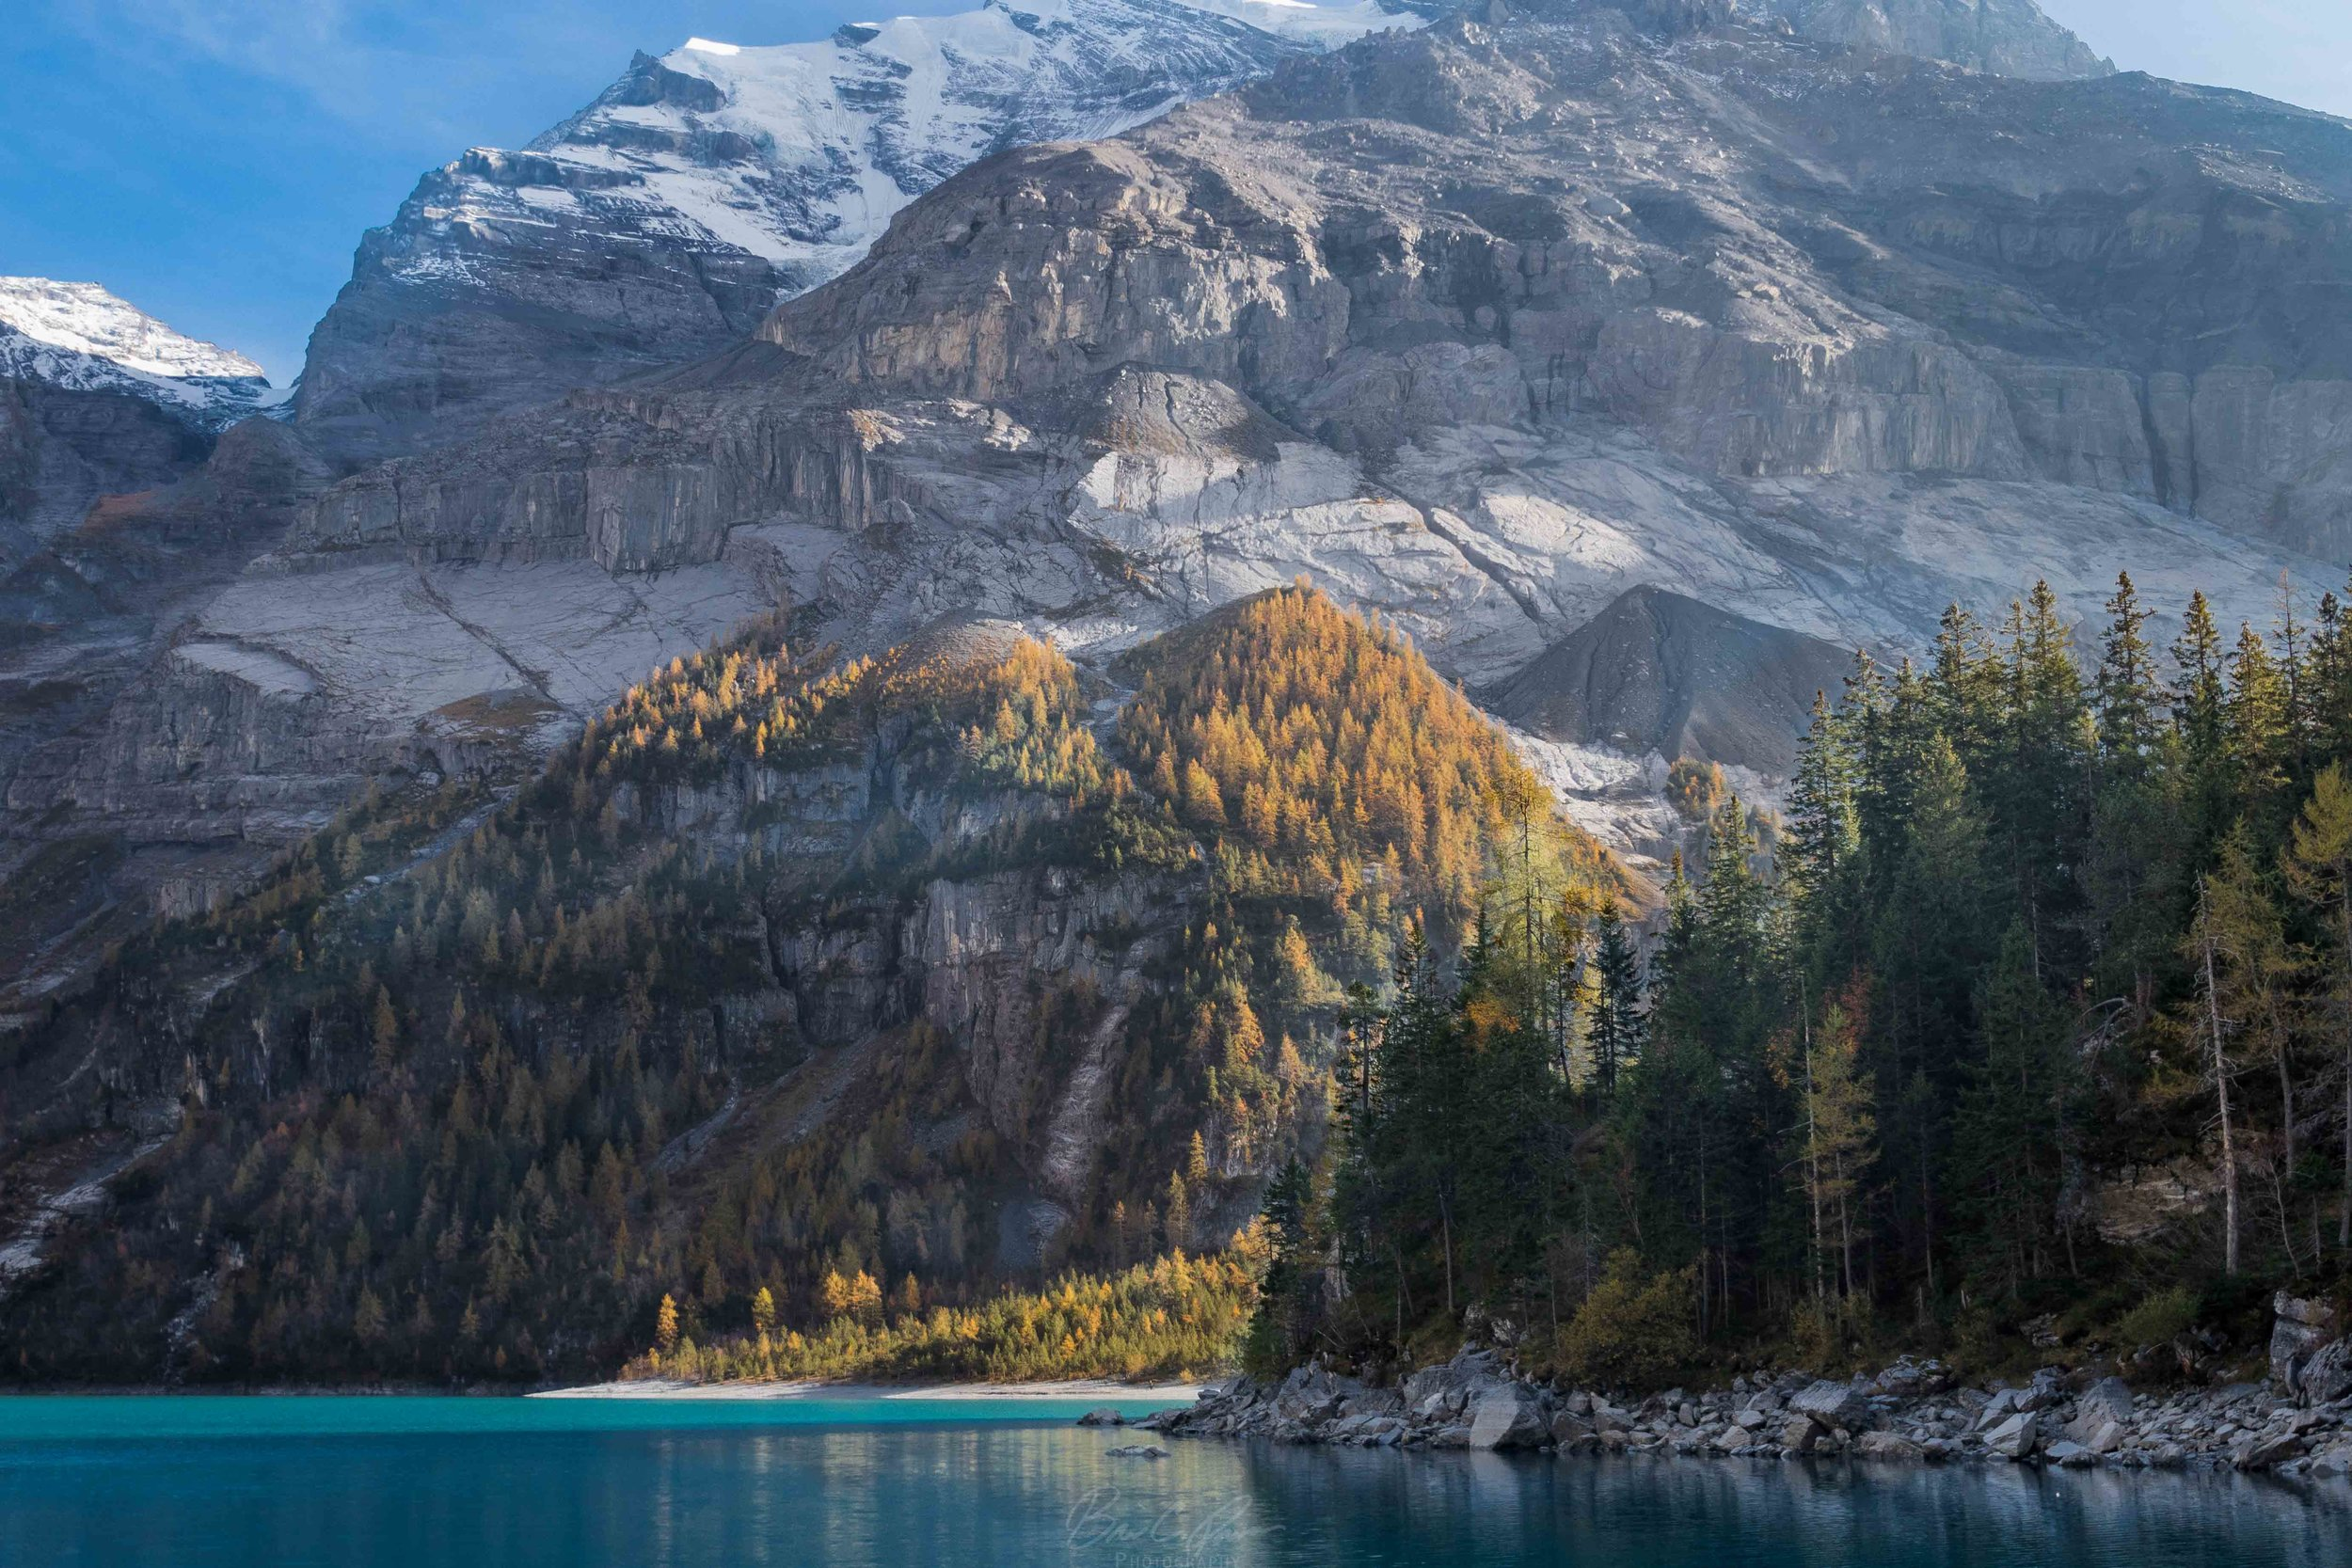 Oeschinen Lake from the water's edge